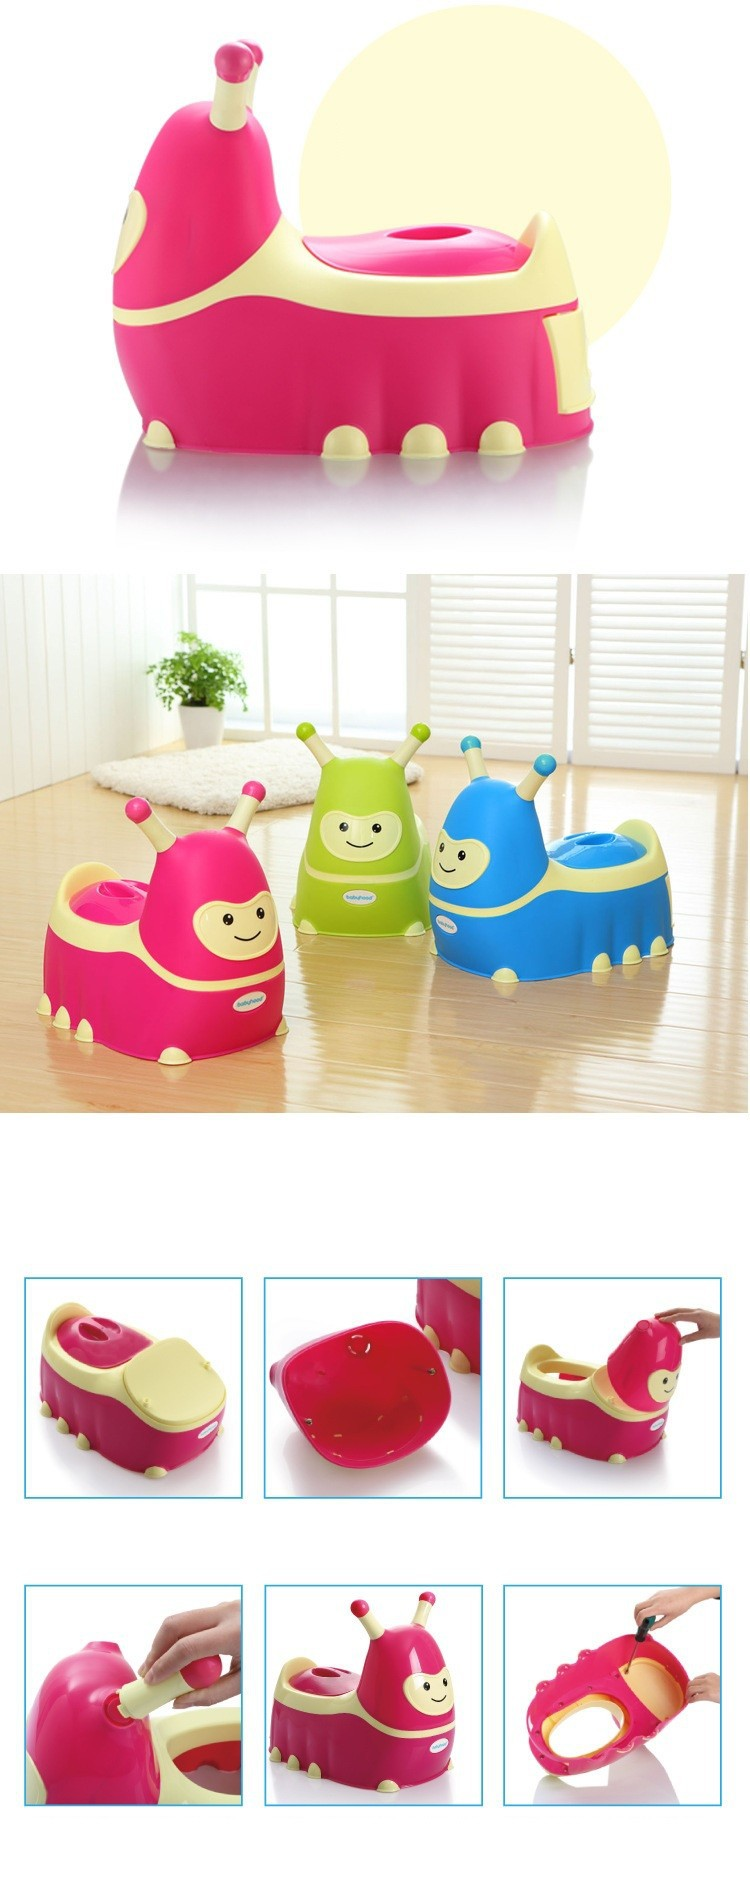 Baby Protable Potties Cartoon Kawaii Folding Travel Toilet for Infant and Kids Children Training Toilet Seat Chair Toy Cars